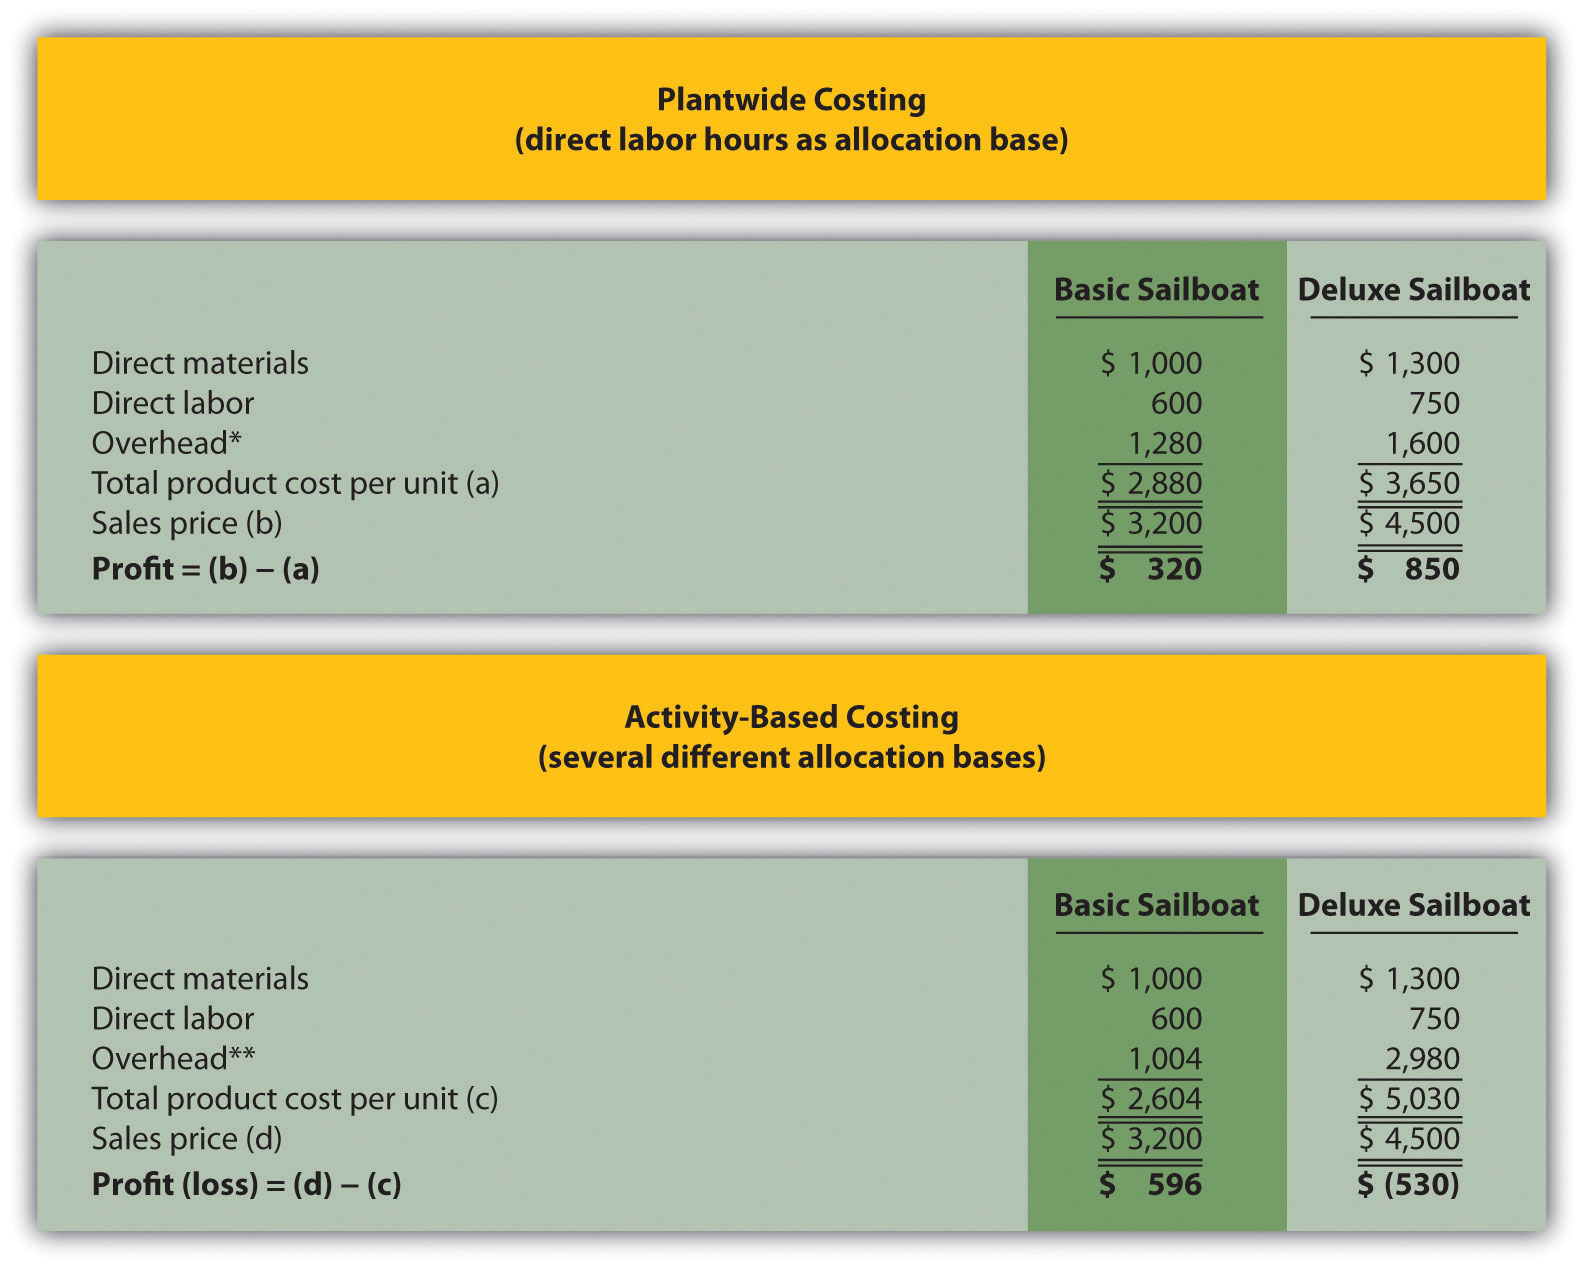 Figure 3.7 compares activity-based costing to plant-wide costing.